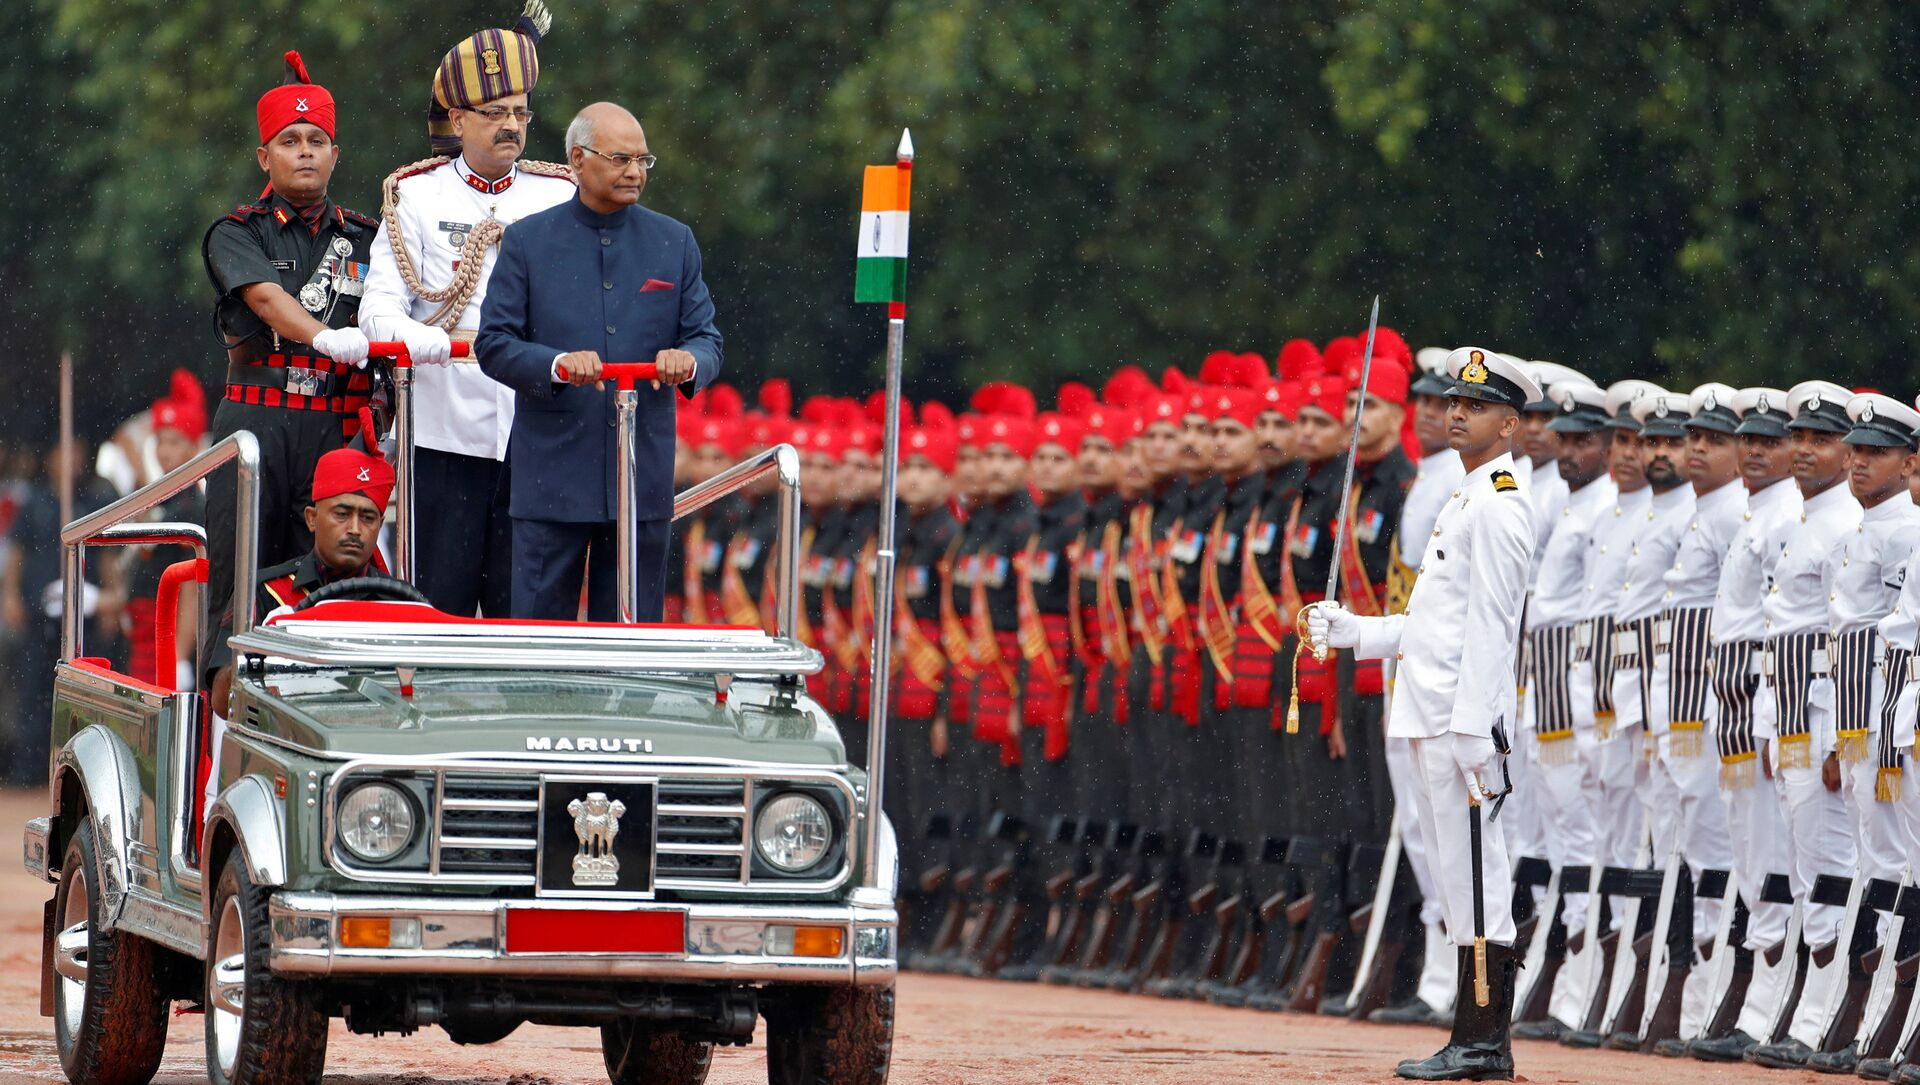 India's new President Ram Nath Kovind inspects an honour guard after being sworn in at the Rashtrapati Bhavan presidential palace in New Delhi, India July 25, 2017 - Sputnik International, 1920, 26.07.2021